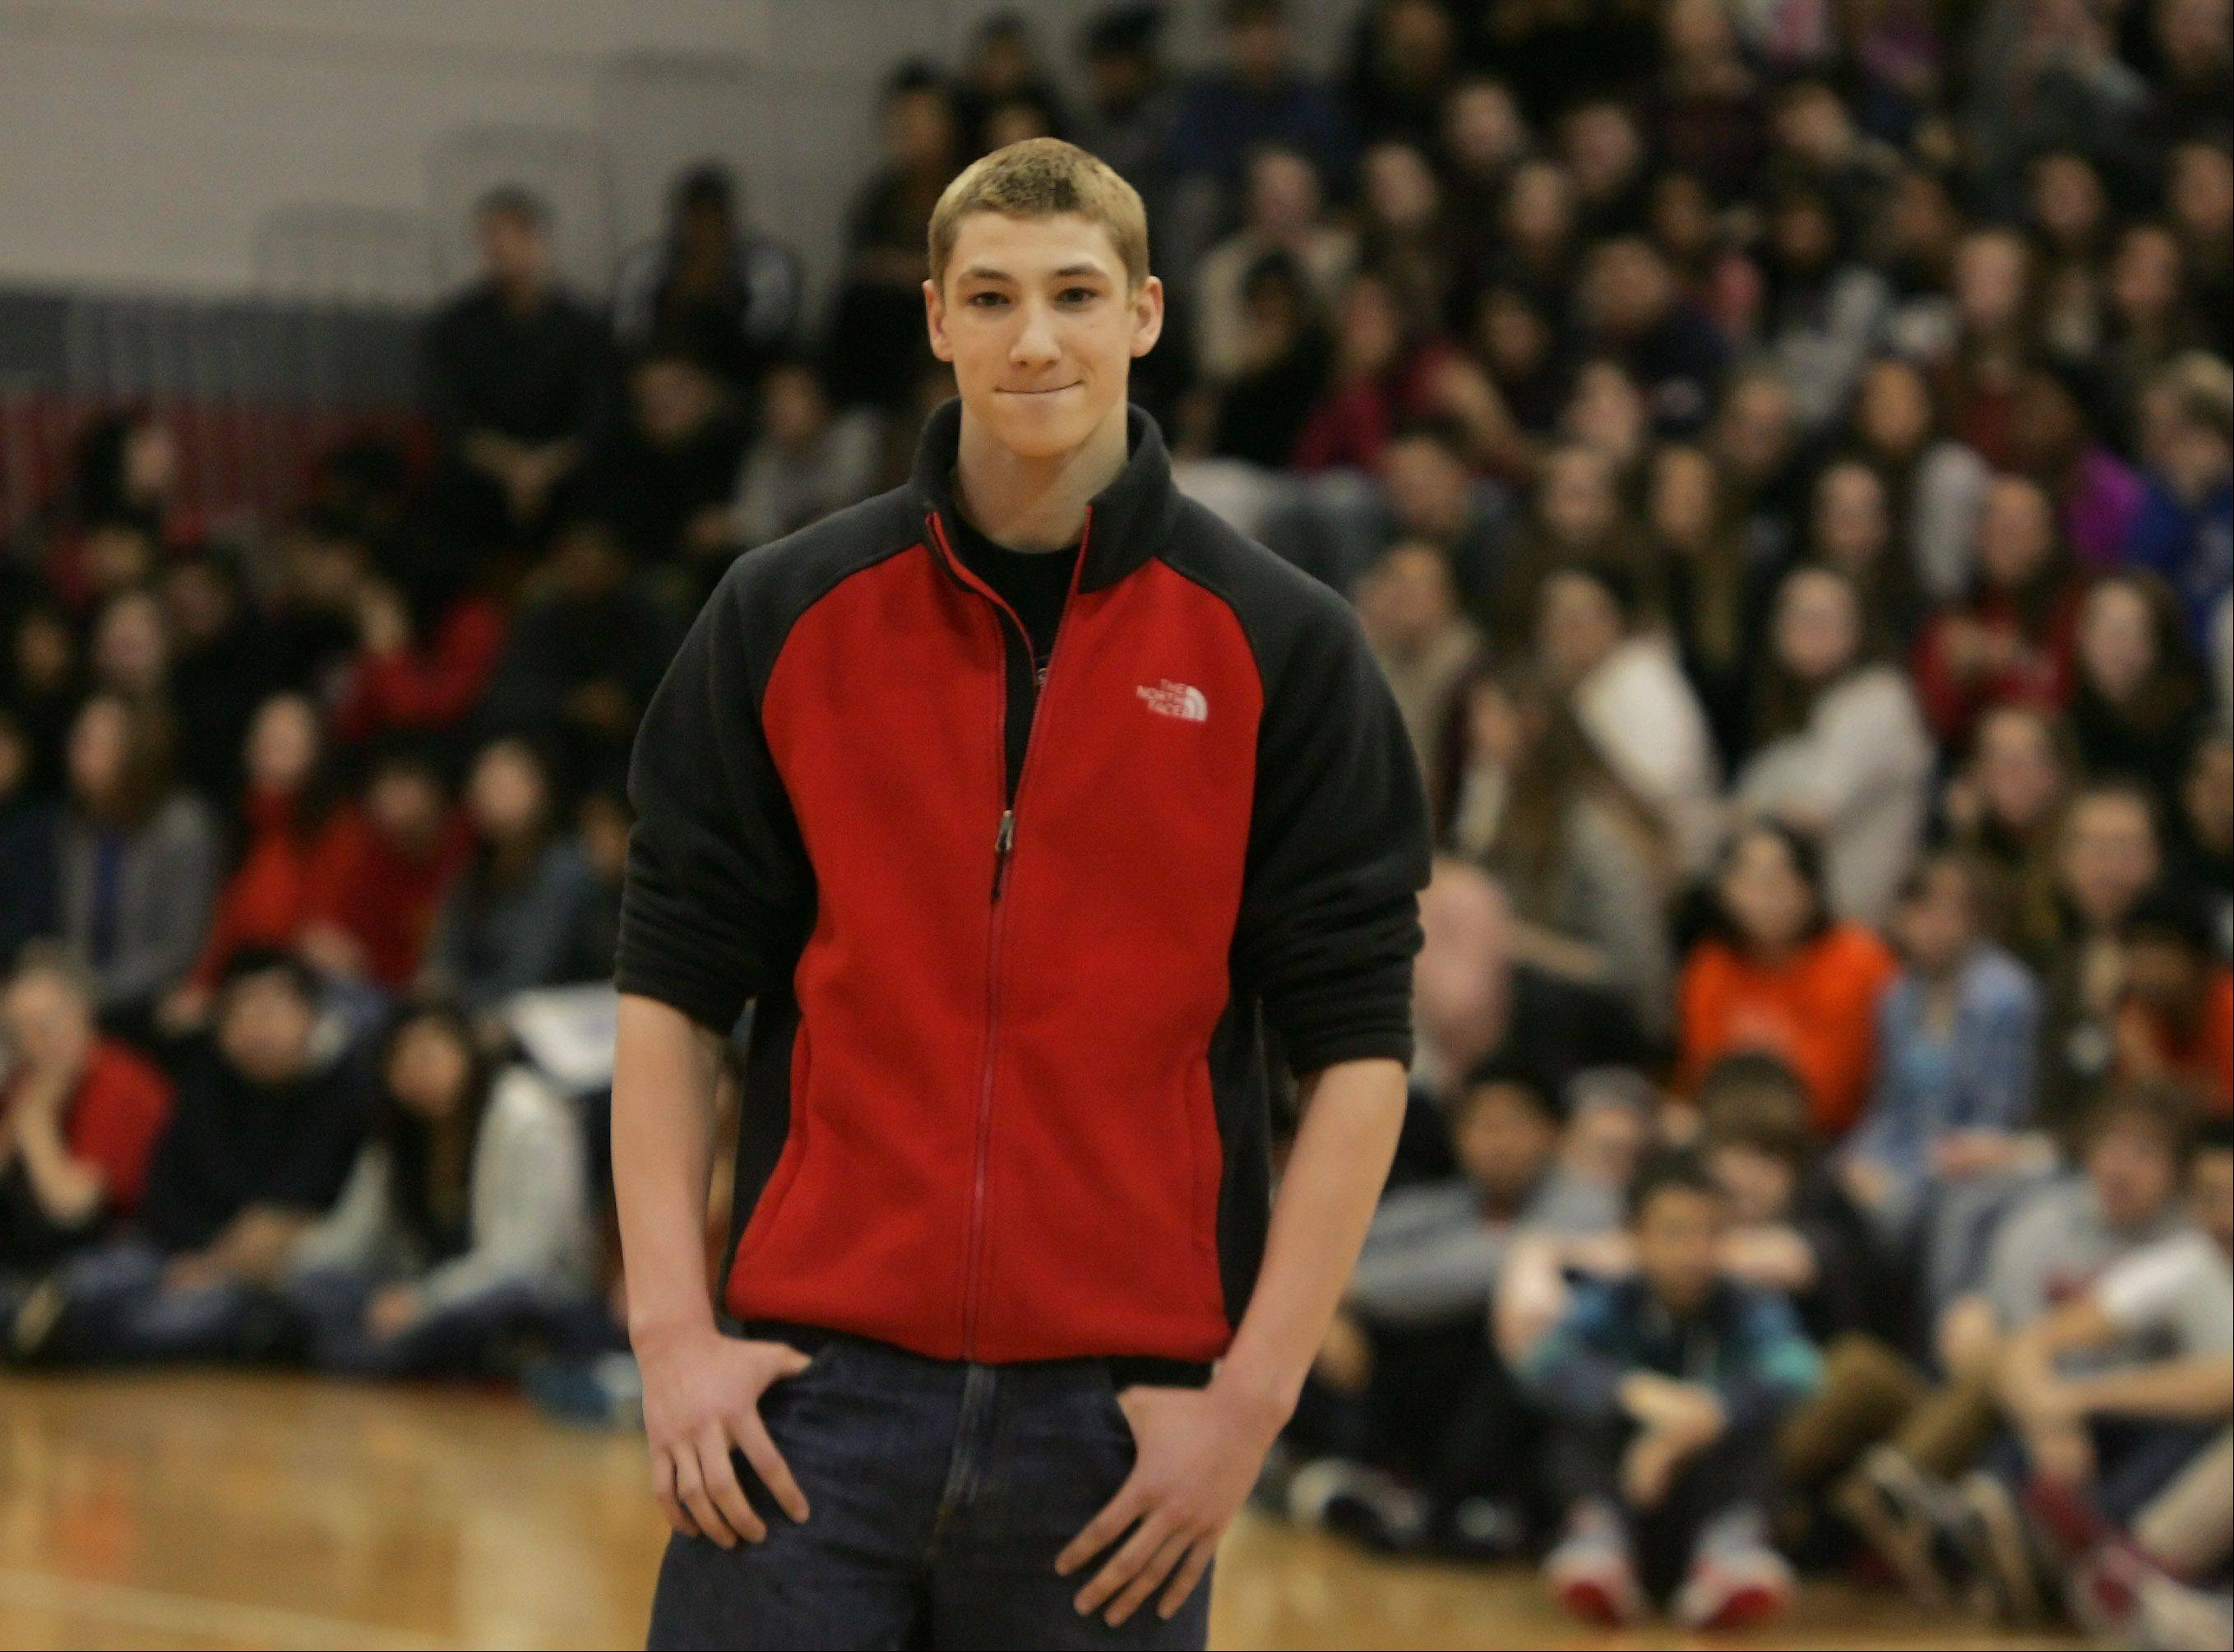 Connor Black is honored at an all-school assembly at Mundelein after breaking state and national records at the state swimming meet. Black, the Daily Herald�s Lake County male athlete of the year, set a state record in the 50 freestyle and broke state and national records in the 100 butterfly.